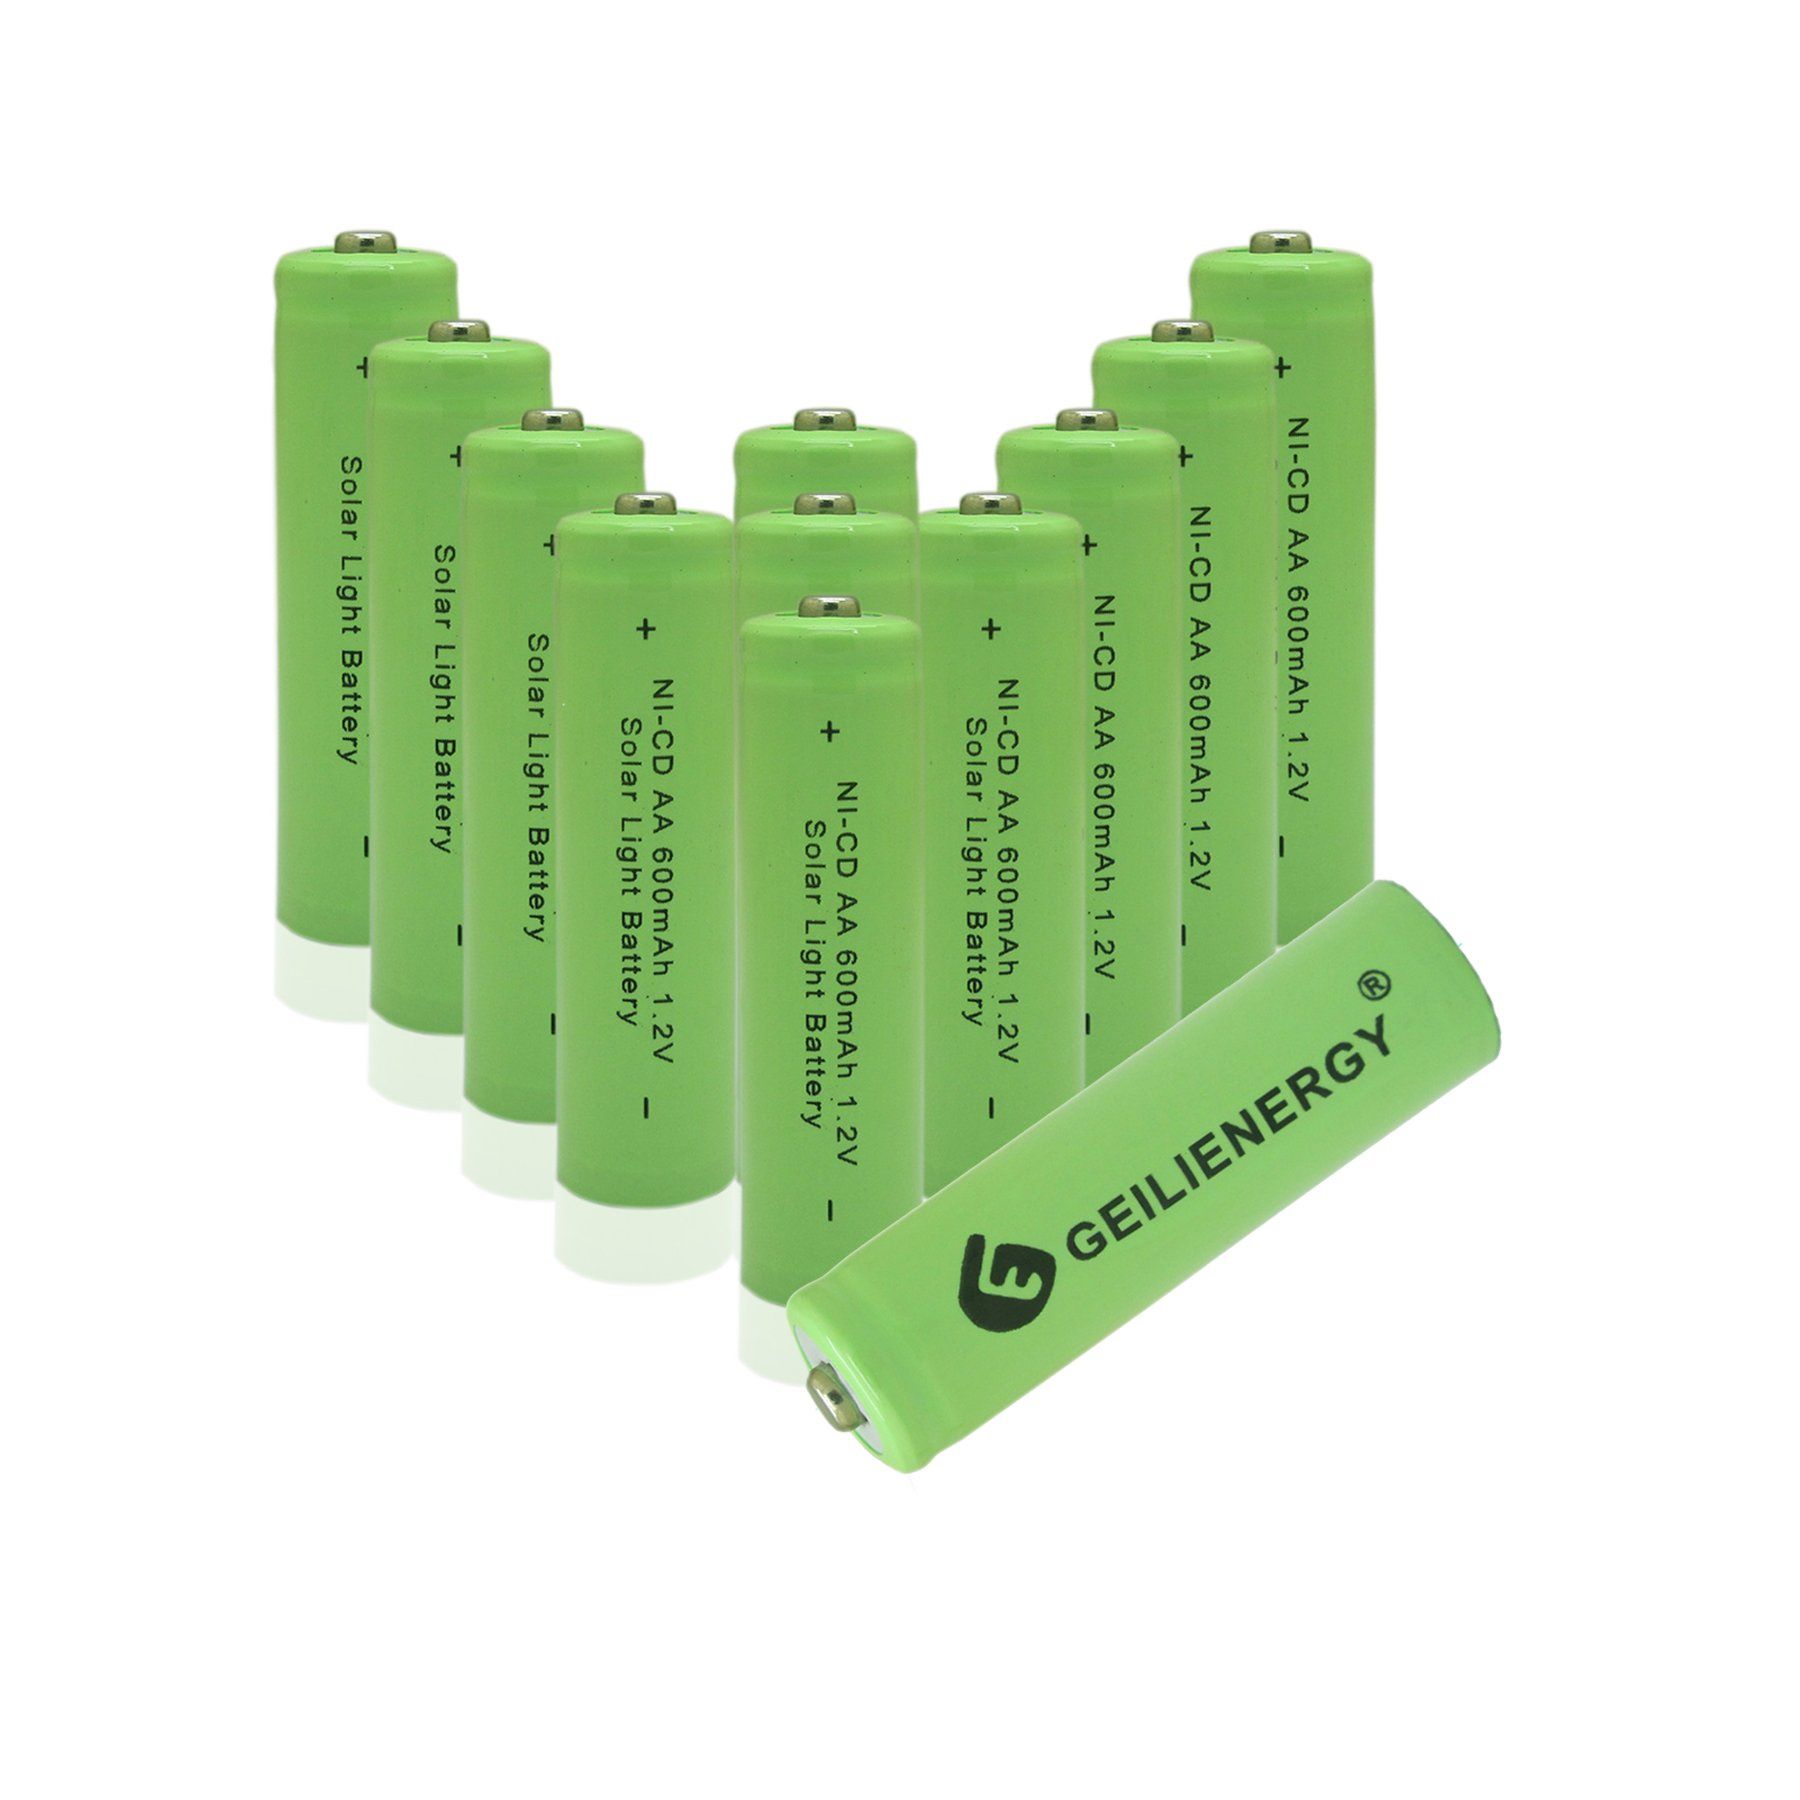 GEILIENERGY 1.2v AA NiCd 600mAh Rechargeable Battery for Solar Light Lamp Green Color (Pack of 12pcs AA NI-CD Batteries)